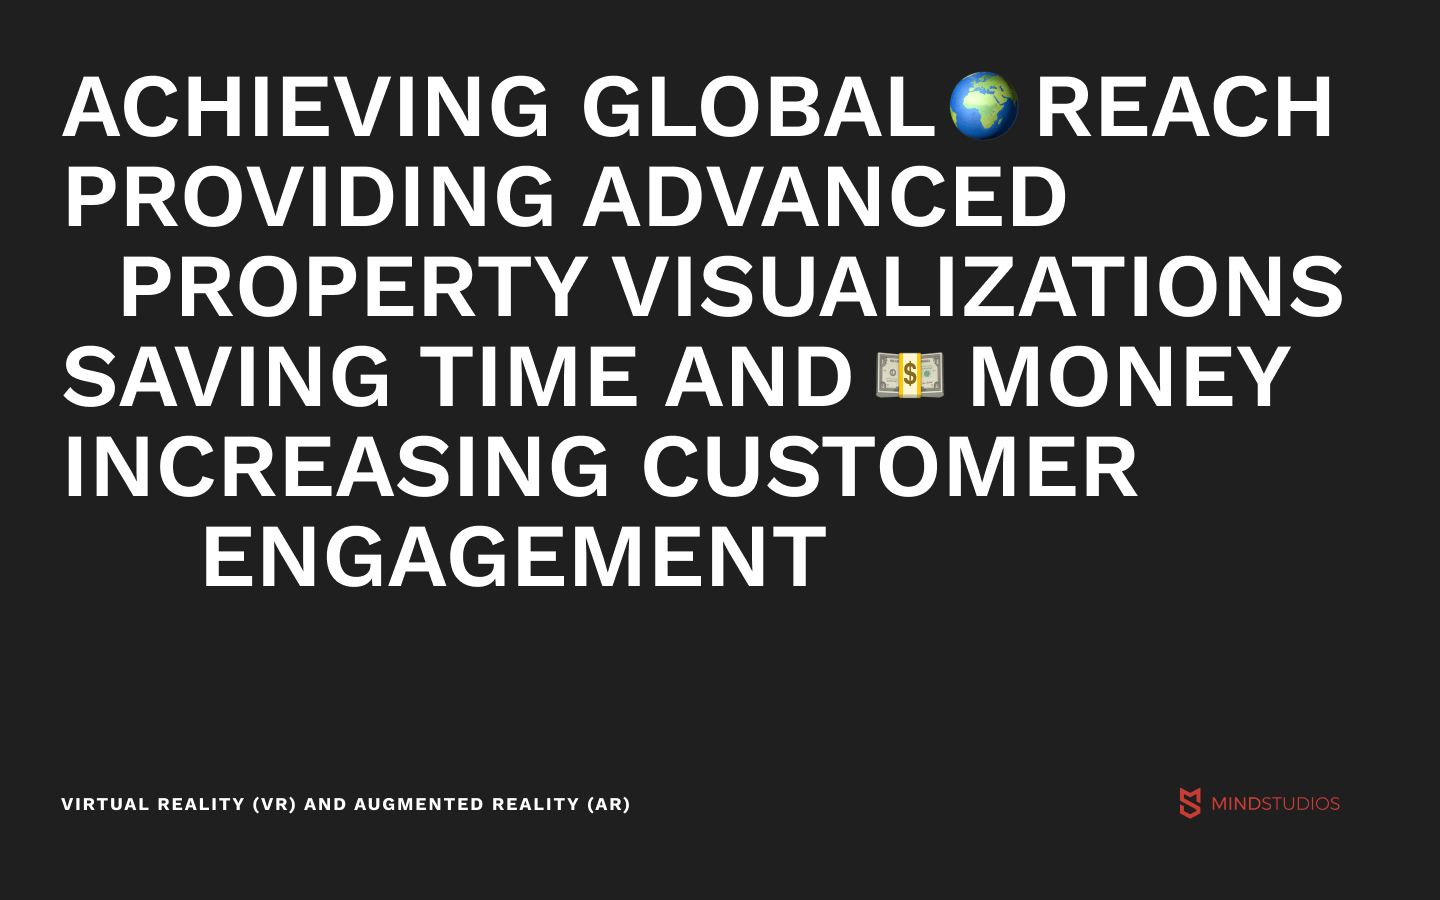 Virtual reality (VR) and augmented reality (AR) for real estate startups